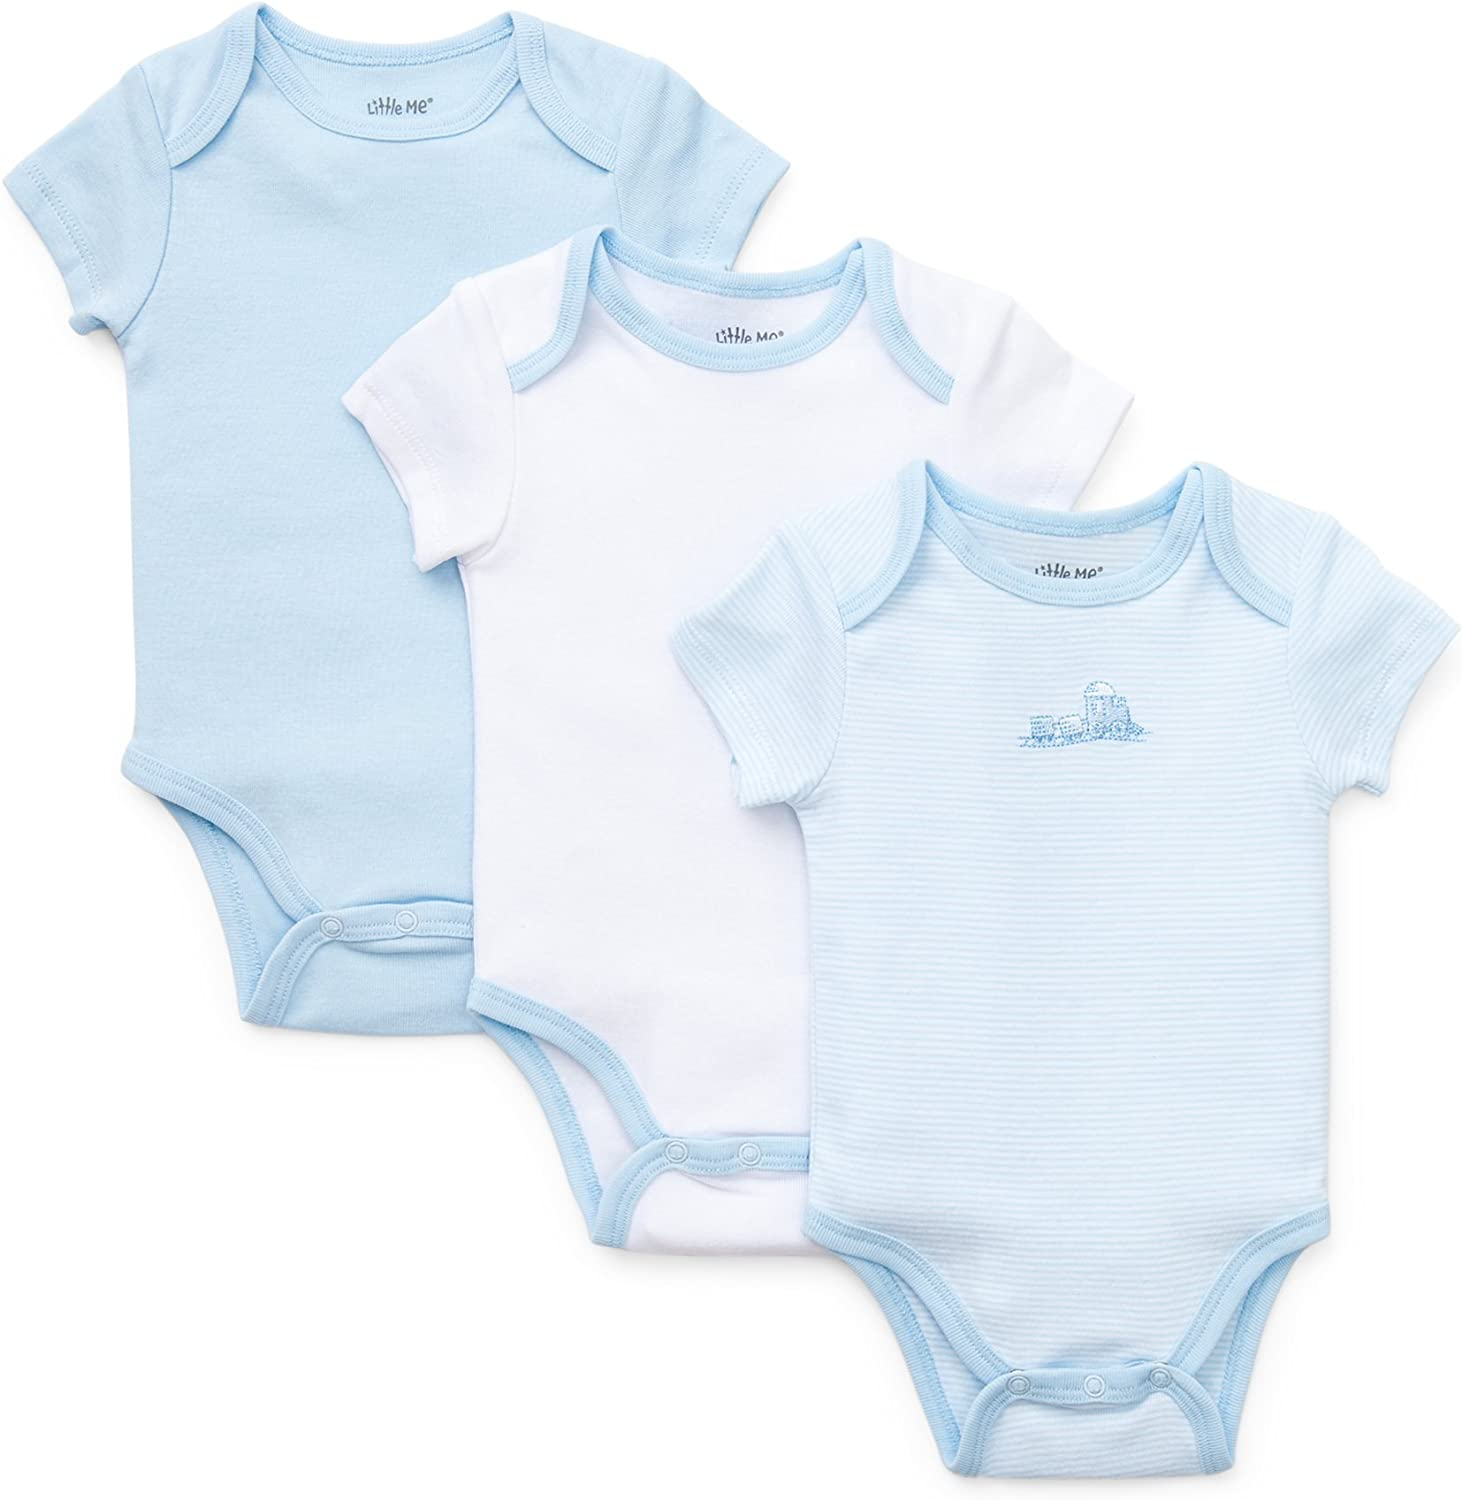 Little Me Boys 3-Pack Bodysuits